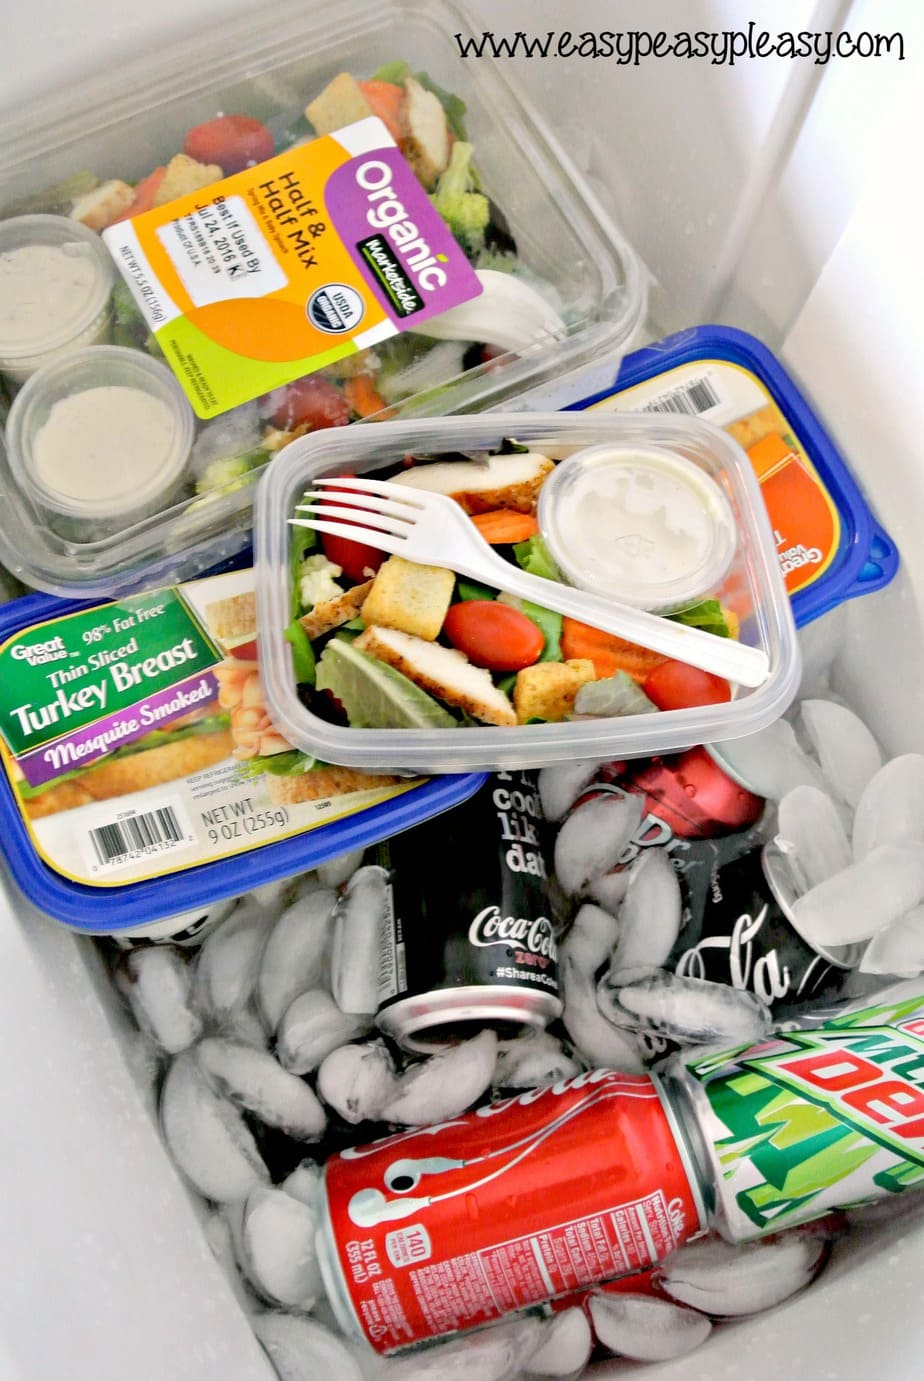 To Go Salads with no cleanup are the perfect addition to your cooler when hanging on the beach, on the boat, at the ballpark, camping, and tailgating!